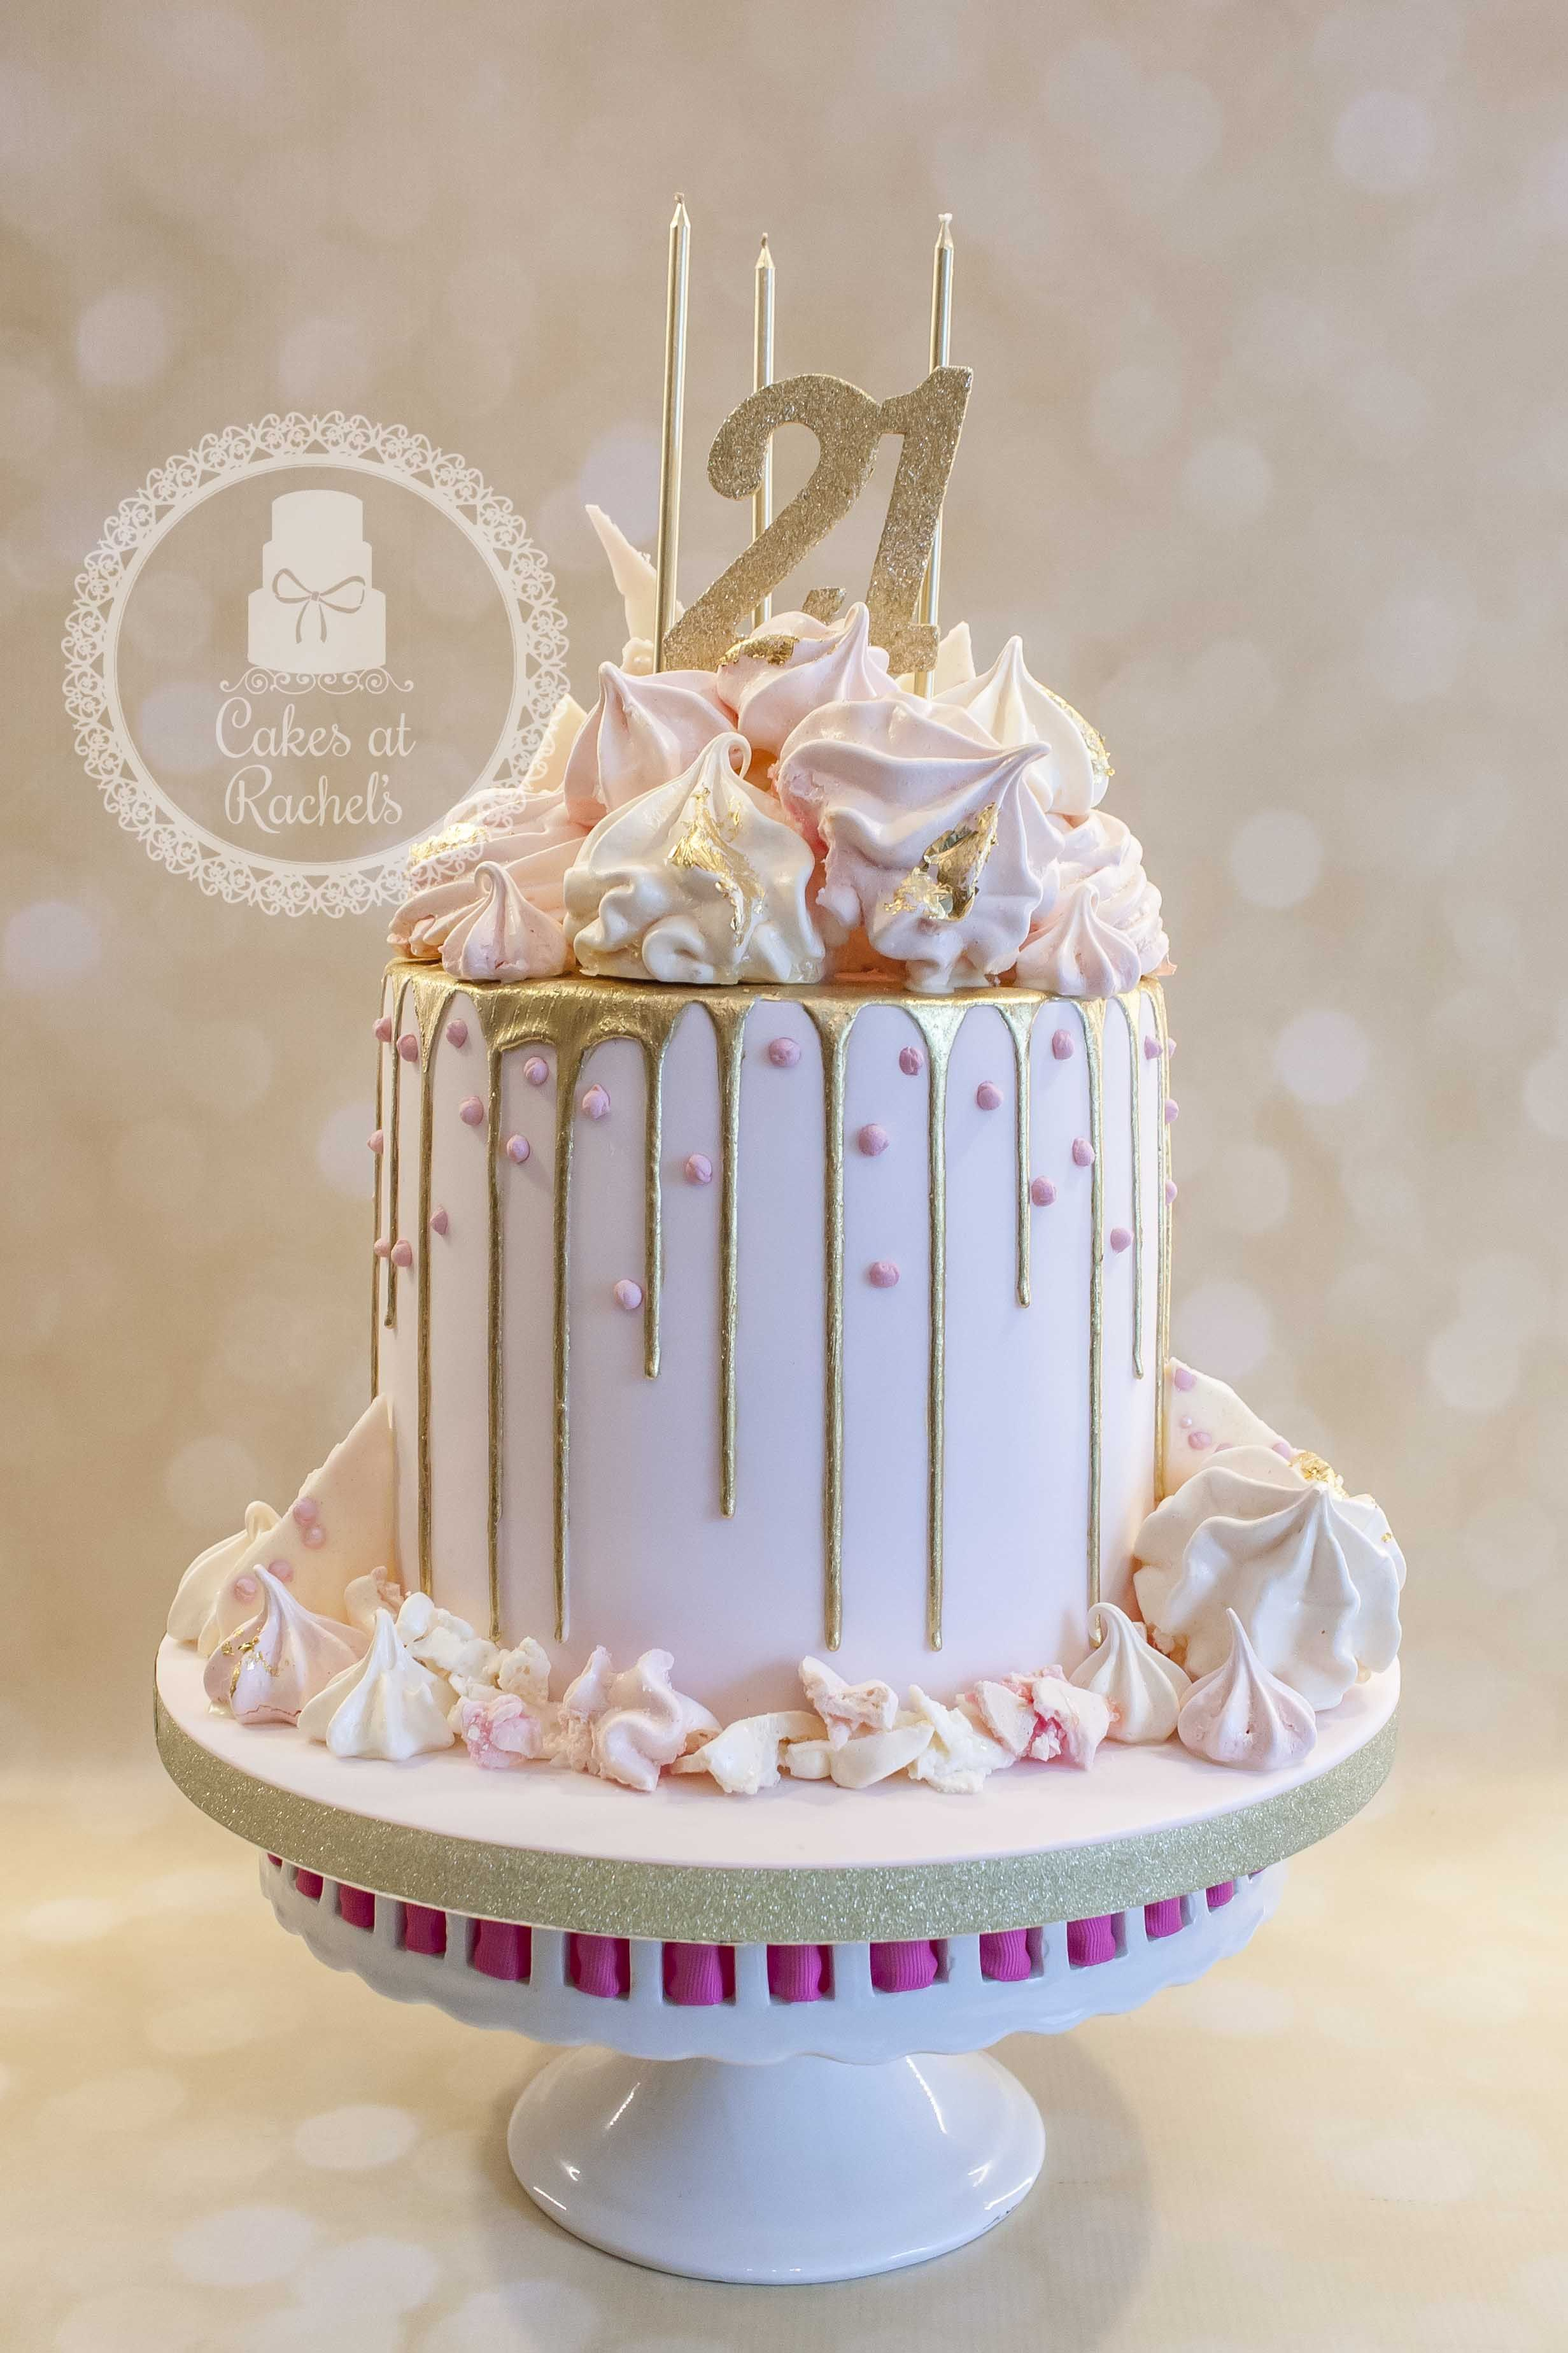 White And Gold Birthday Cake Pastel Pink And Gold Drip Cake For Francescas 21st Birthday Cake